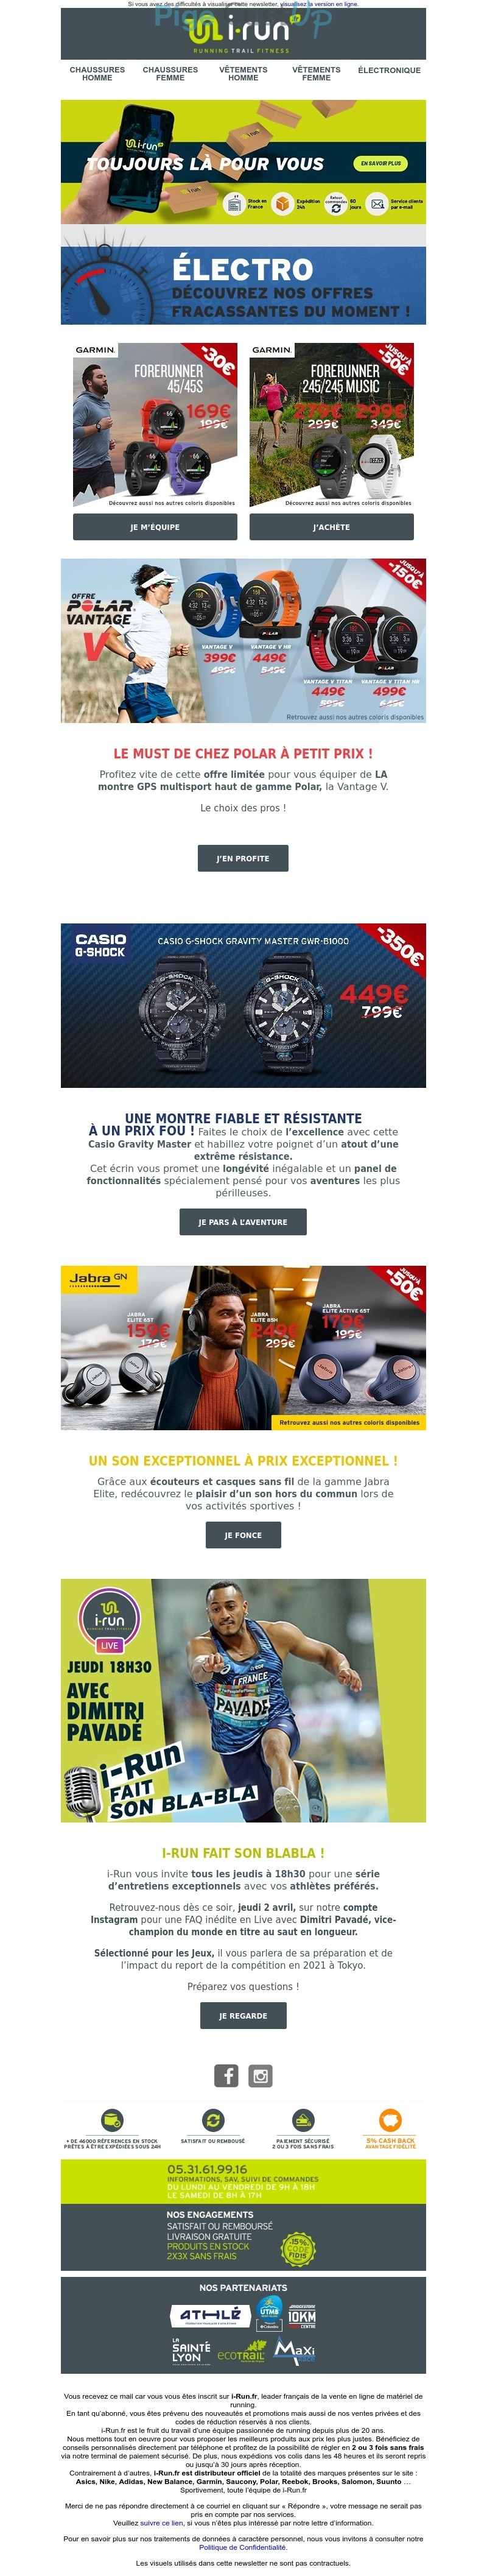 Exemple de Type de media  e-mailing - i-run - Marketing marque - Communication Produits - Nouveaux produits - Marketing fidélisation - Incitation au réachat - Marketing Acquisition - Ventes flash, soldes, demarque, promo, réduction